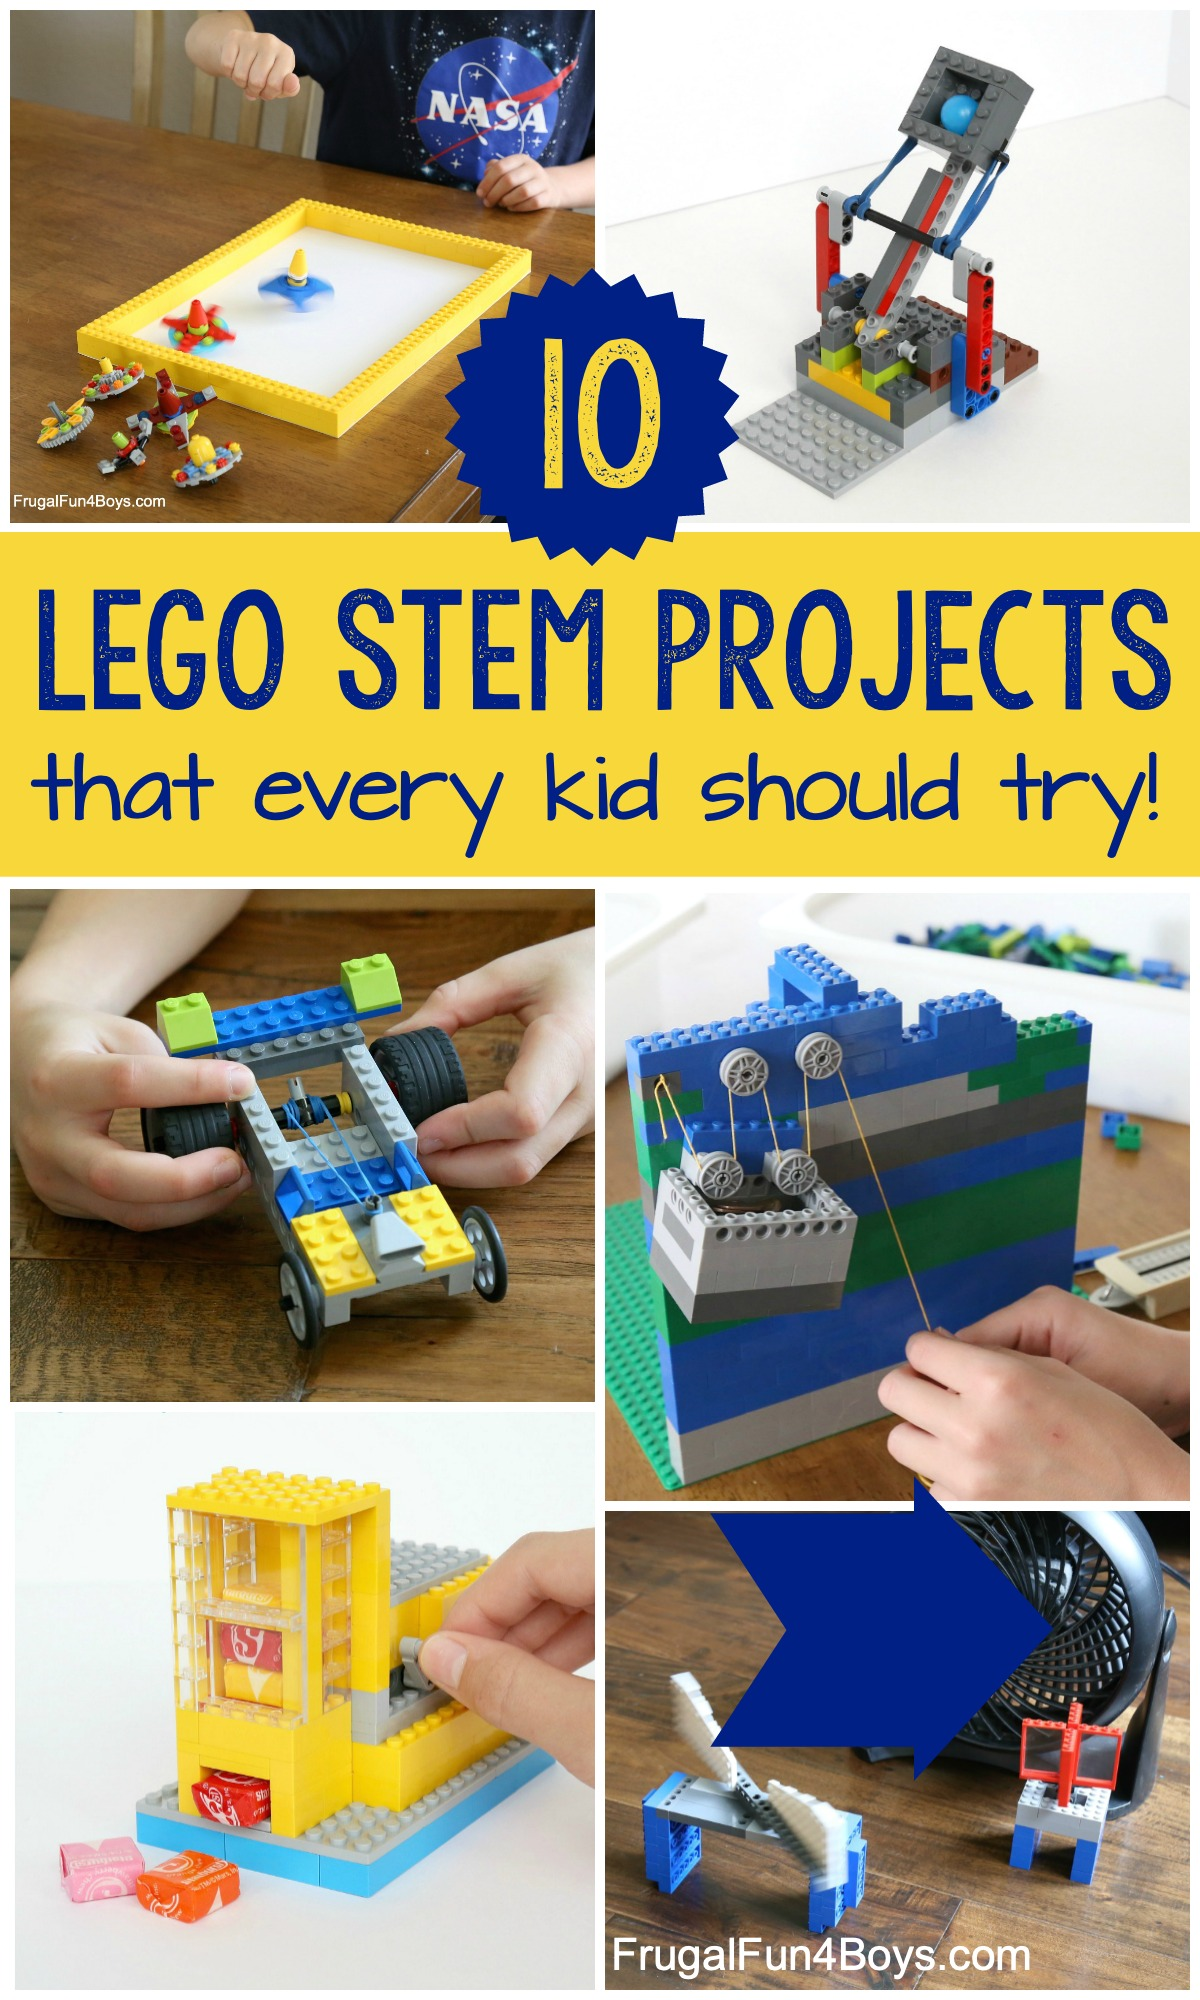 10 Lego Stem Projects That Every Kid Should Try Frugal Fun For Boys And Girls